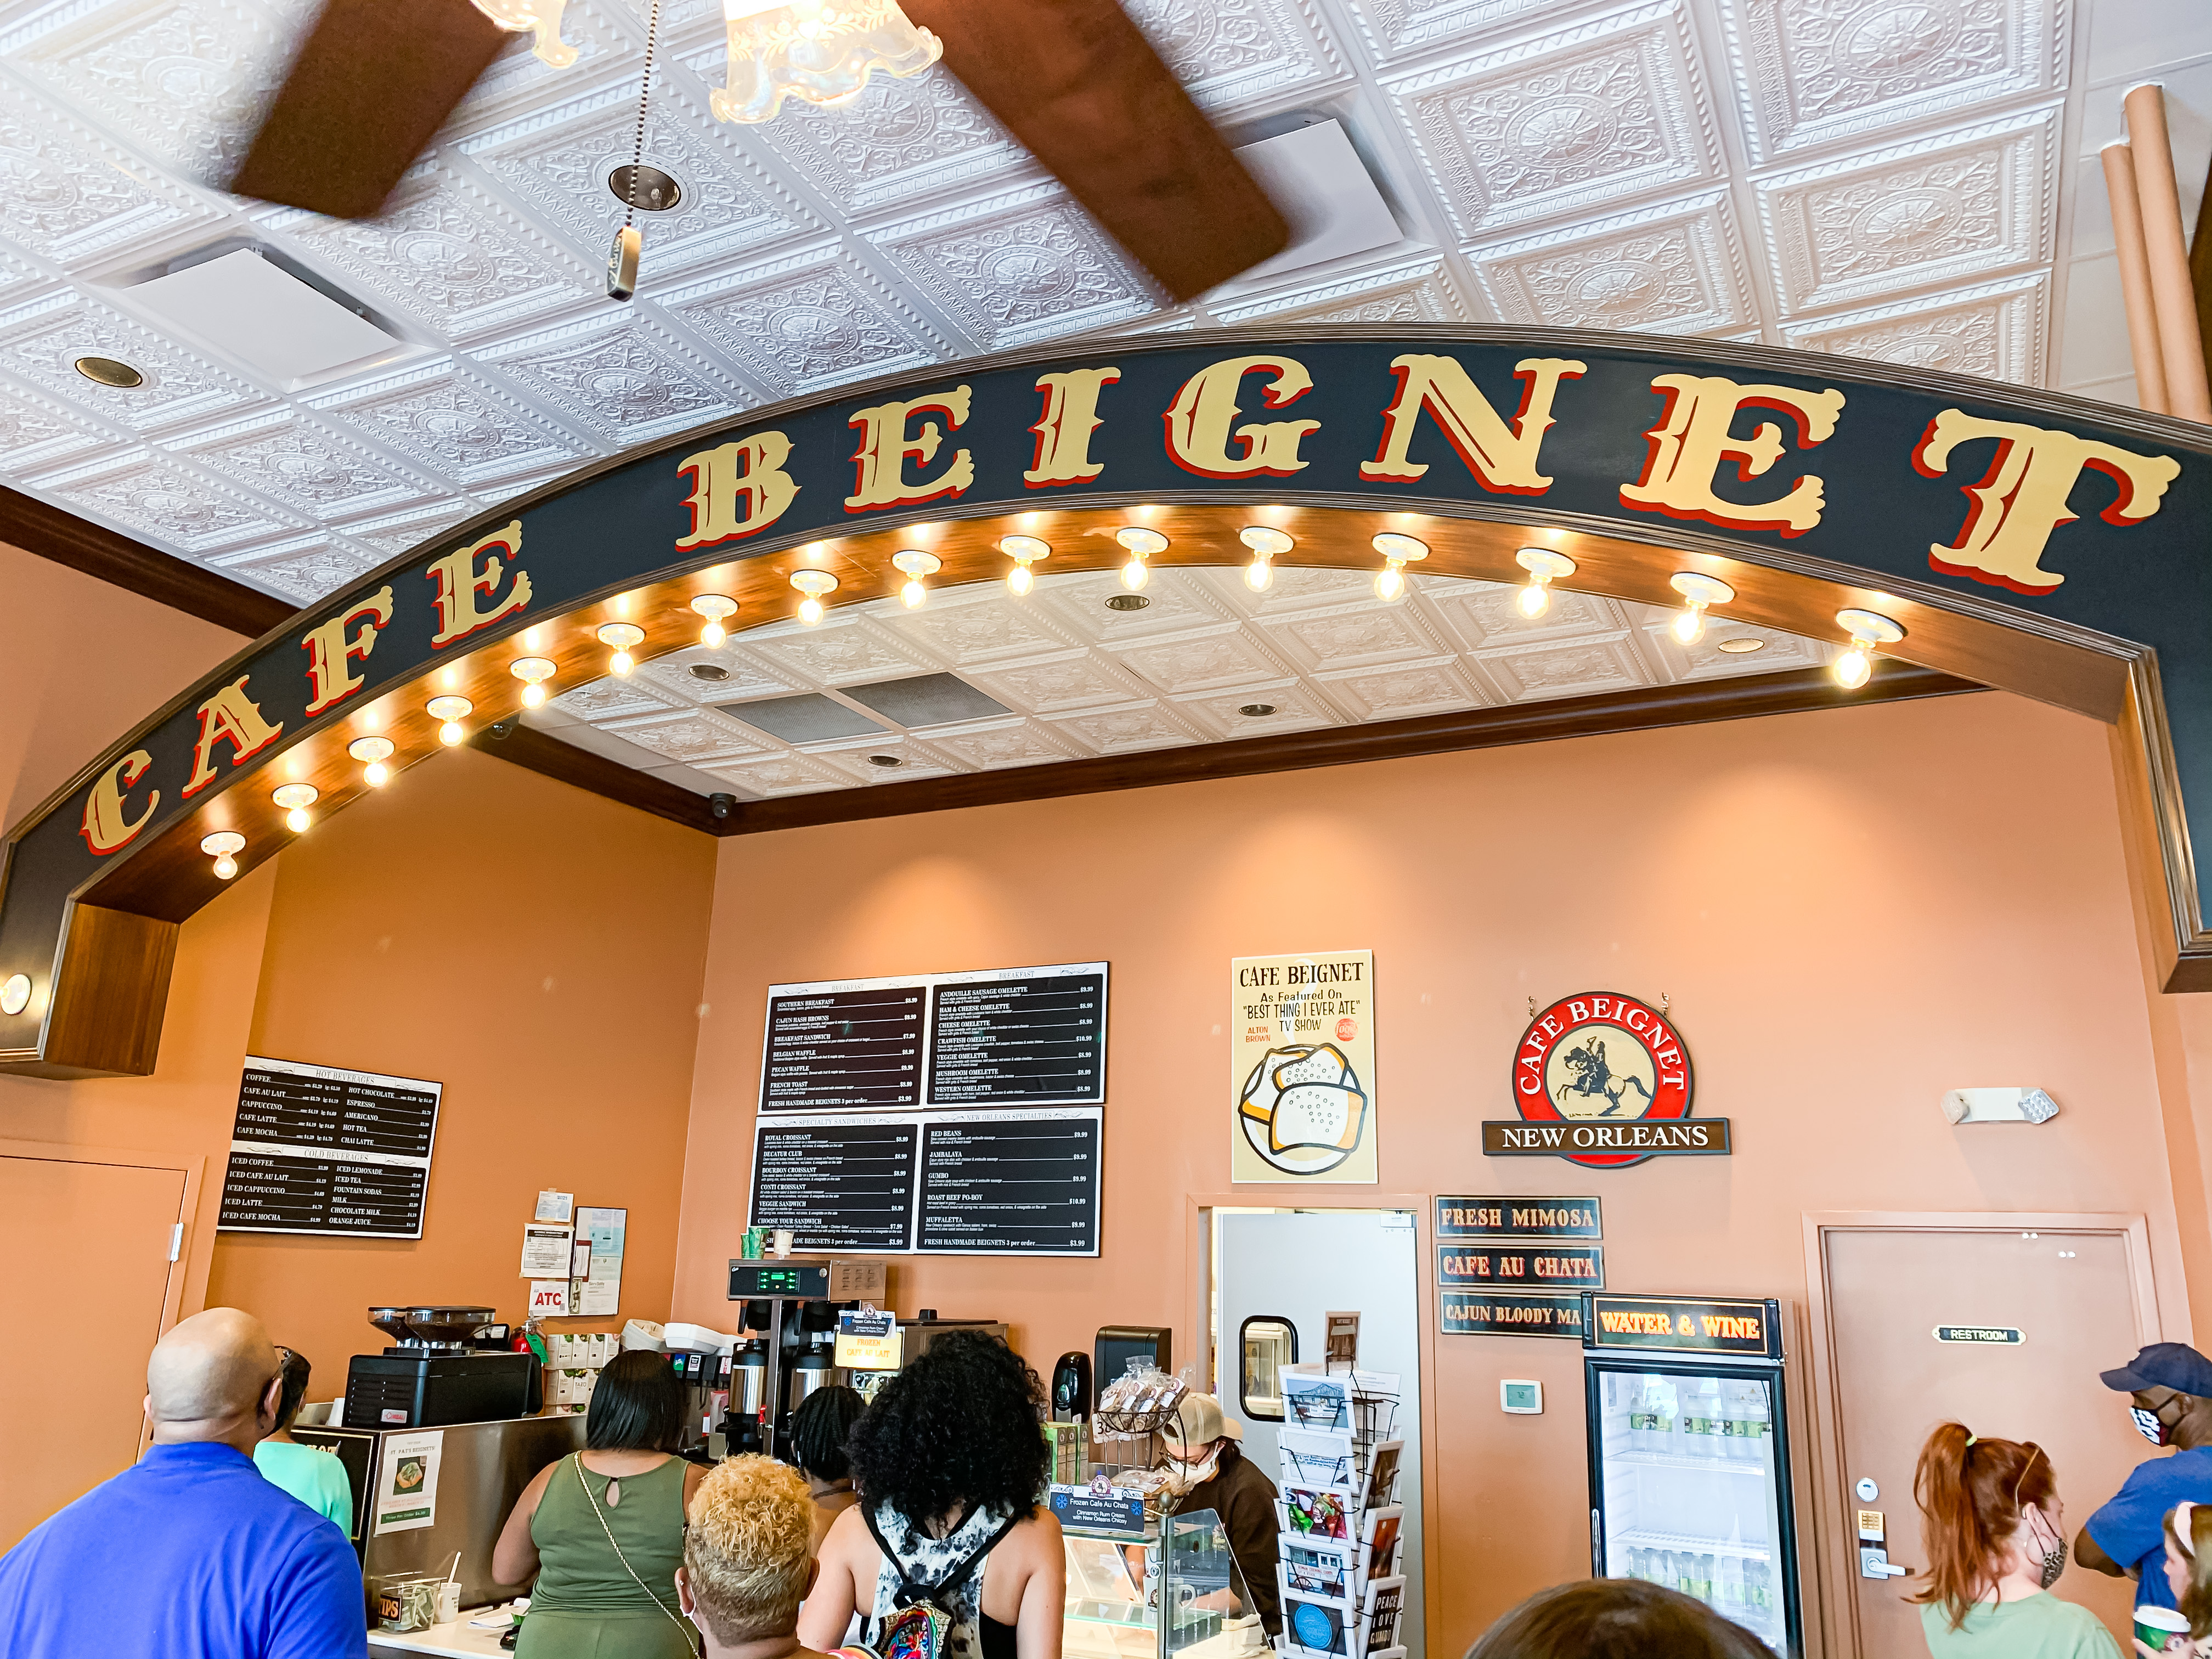 cafe beignet for your trip to new orleans